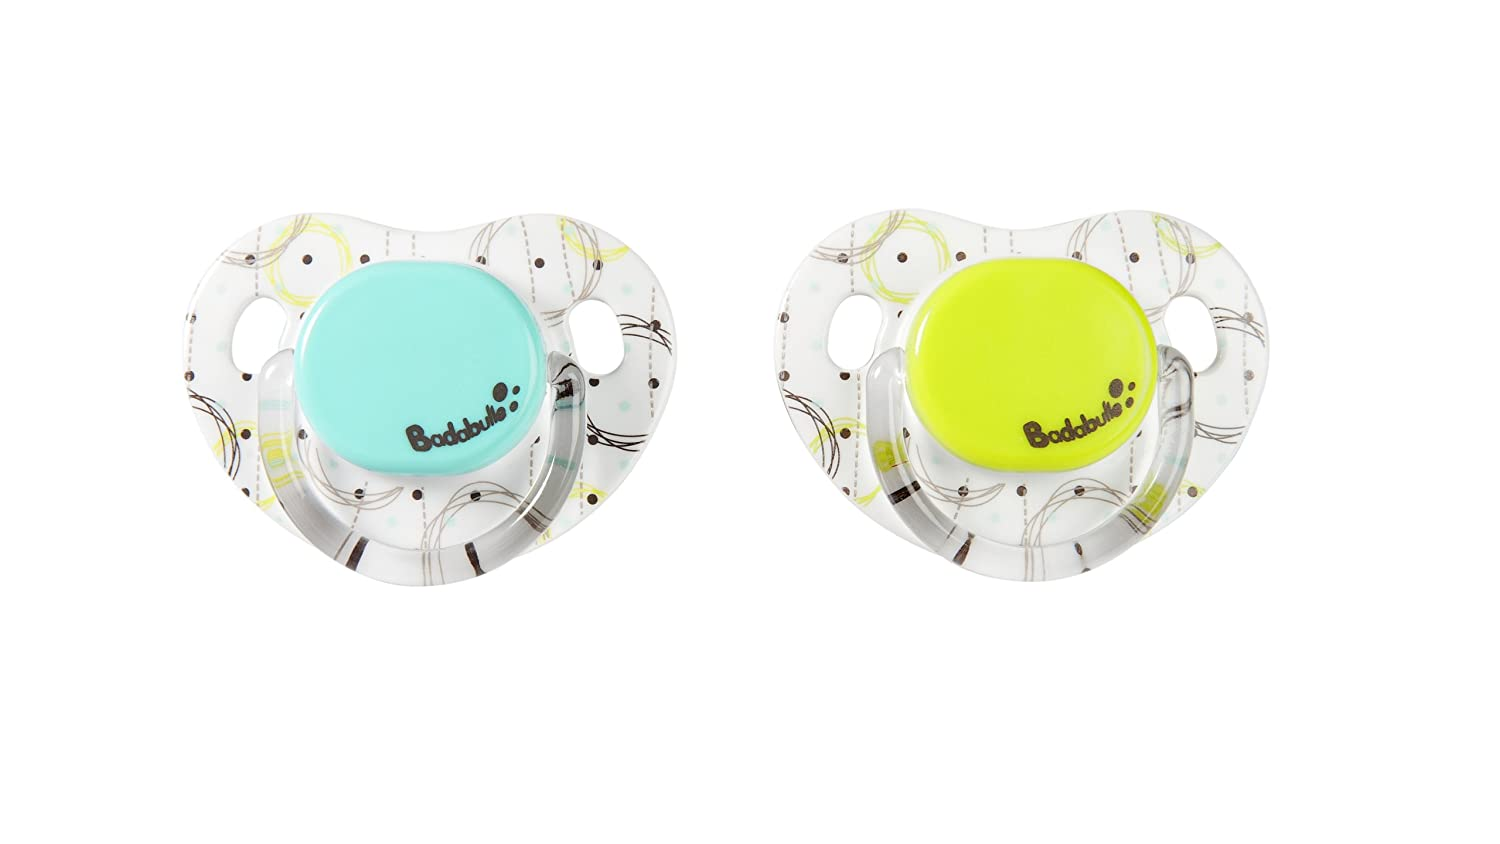 Badabulle 2 Sucettes Physio 0-6 Mois Blanc/Vert/Turquoise B011200